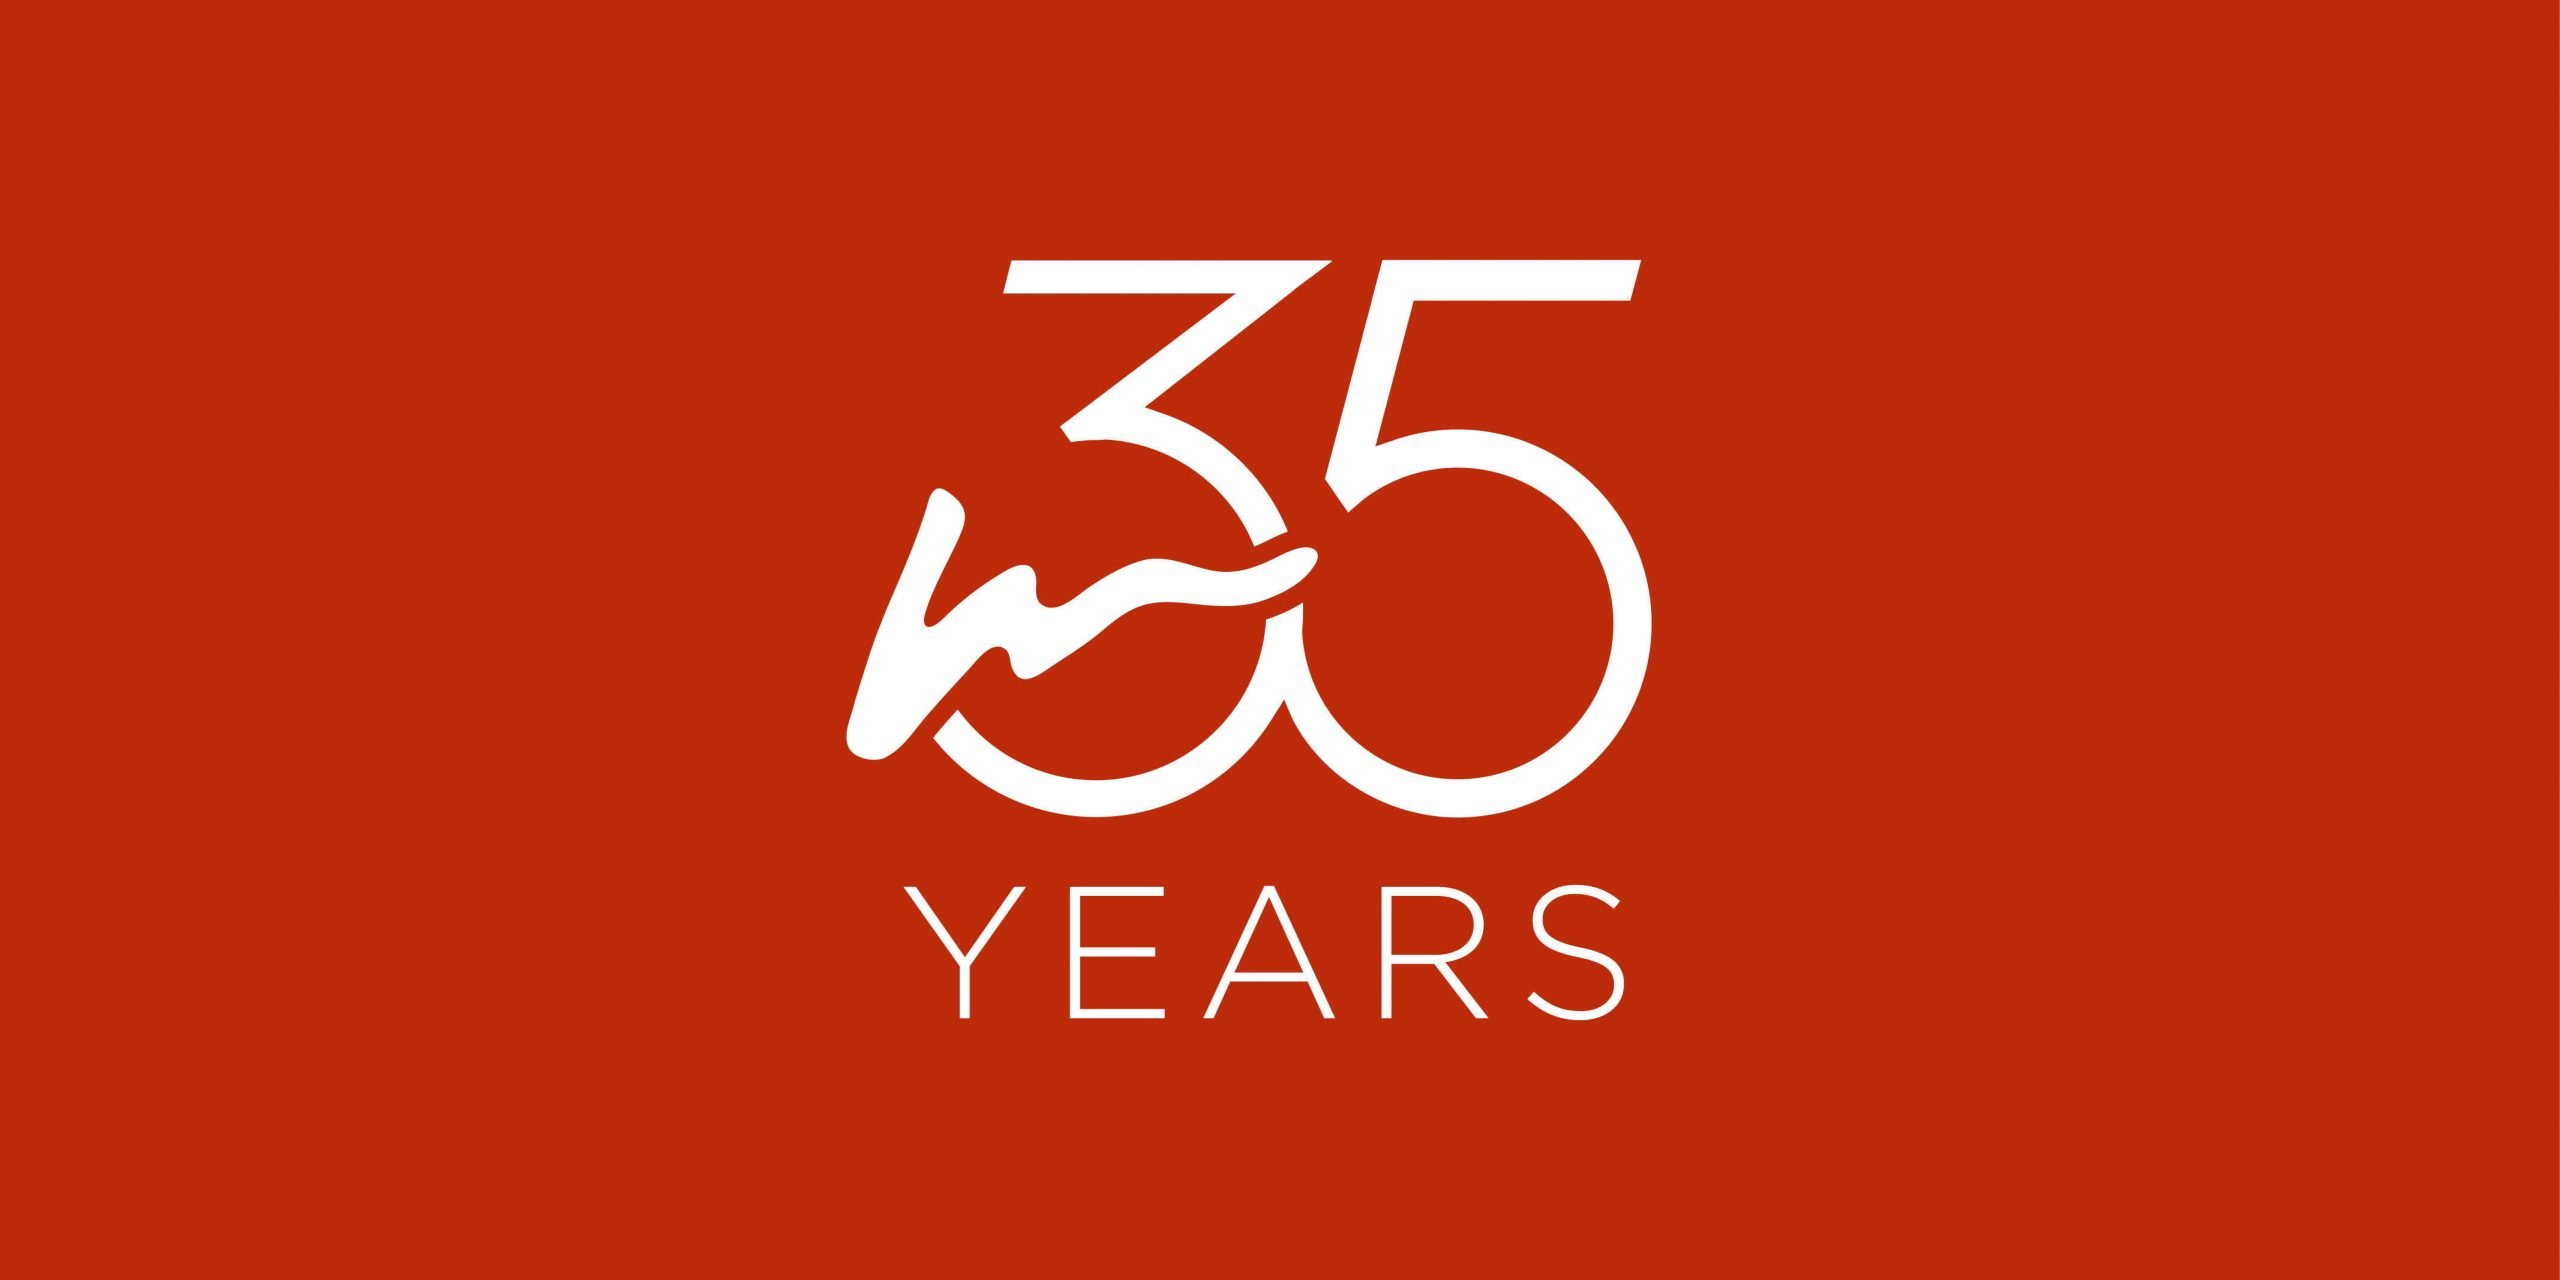 Harris is celebrating 35 years of business in 2021